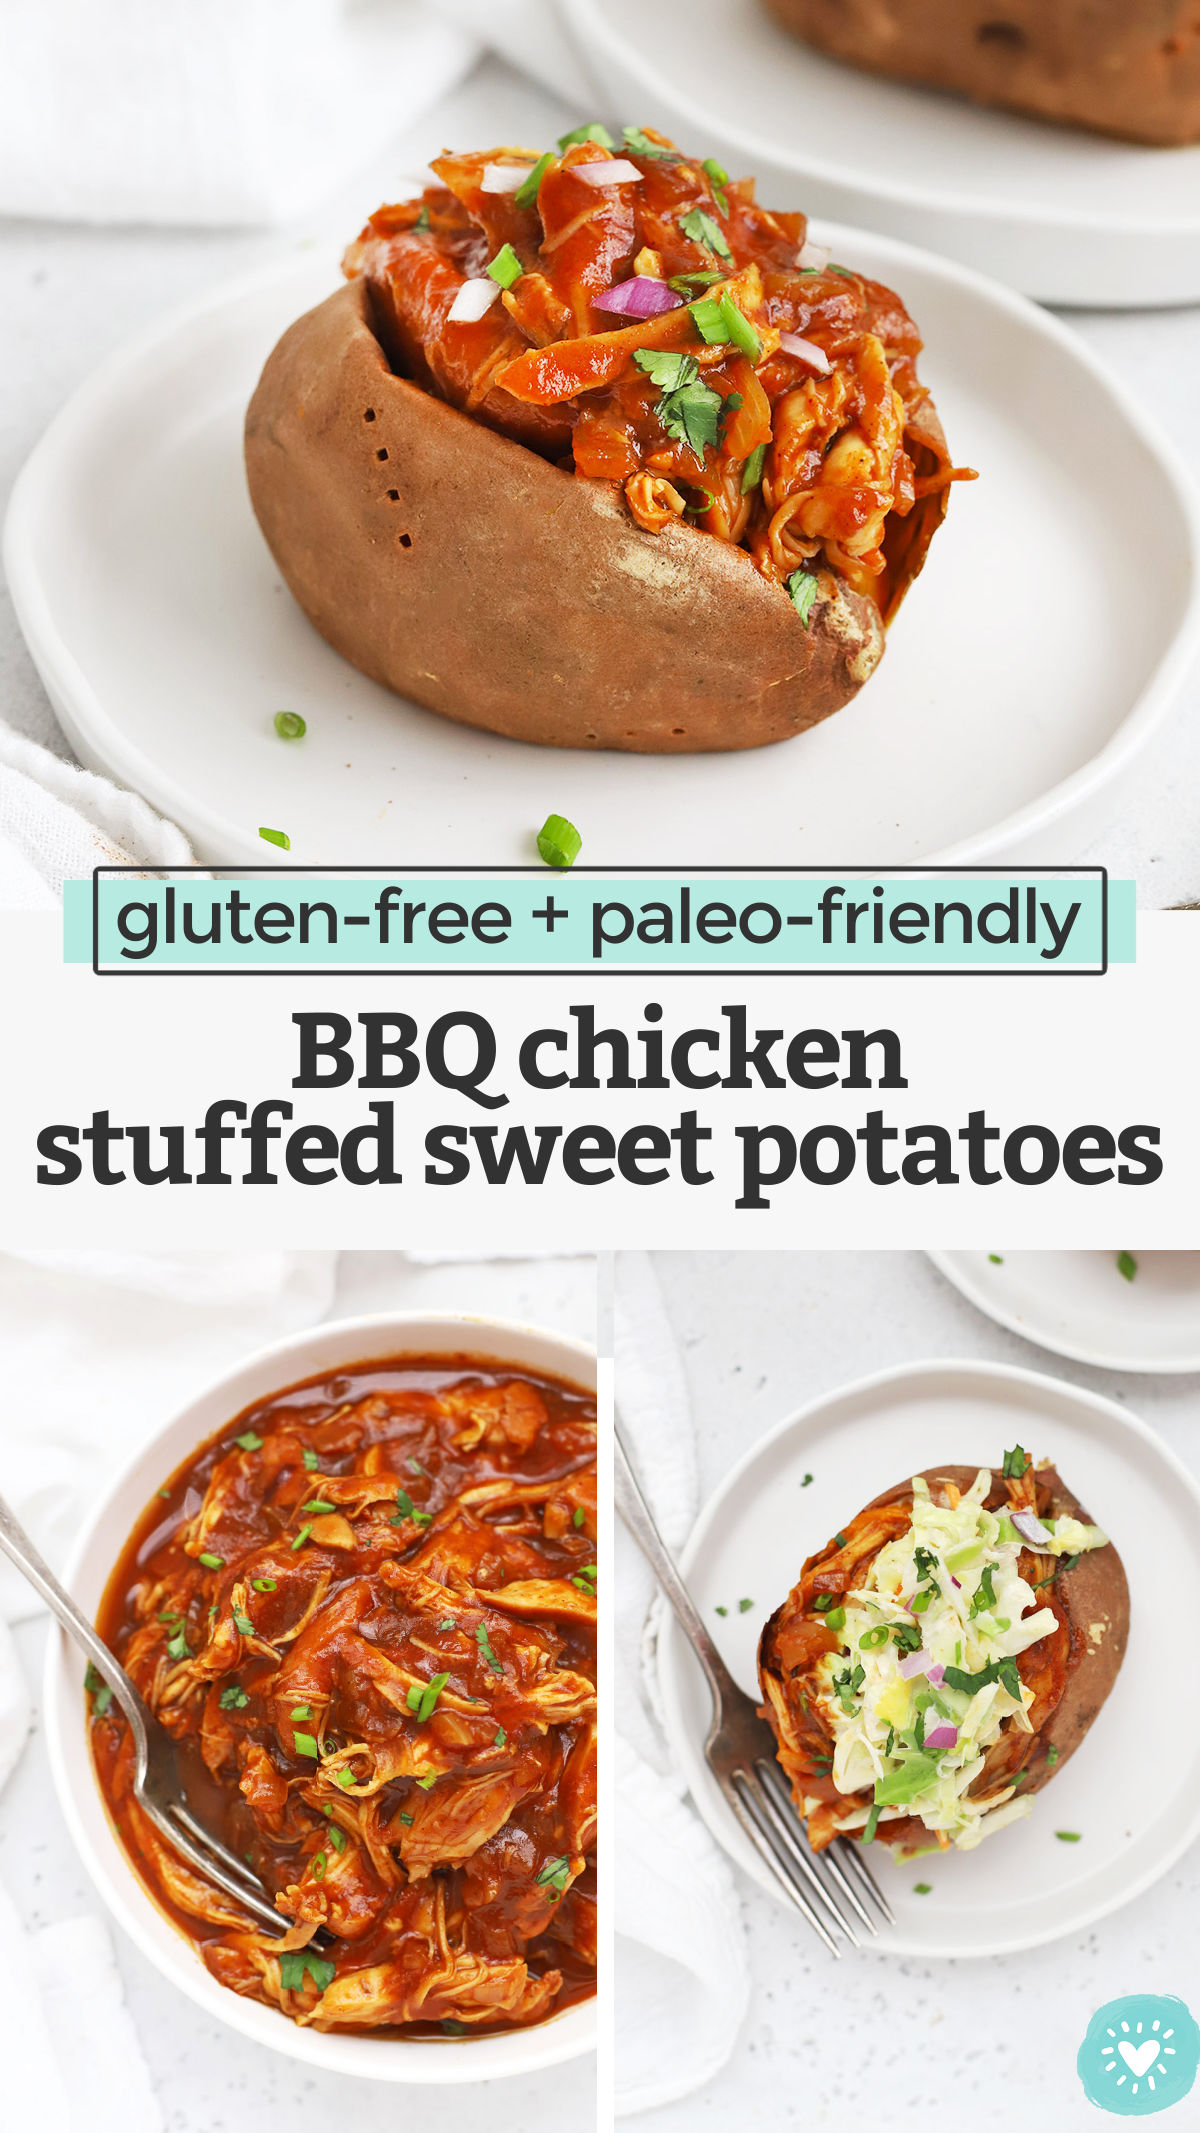 BBQ Chicken Stuffed Sweet Potatoes - Baked sweet potatoes stuffed with tender barbecue chicken and topped with goodies. We love this easy dinner! (Gluten-Free, Paleo, Whole30 Friendly) // Barbecue Chicken Stuffed Sweet Potatoes // Barbecue Sweet Potatoes // Stuffed Sweet Potatoes // Baked Sweet Potato Toppings #paleo #sweetpotato #bakedpotatoe #whole30 #glutenfree #bbq